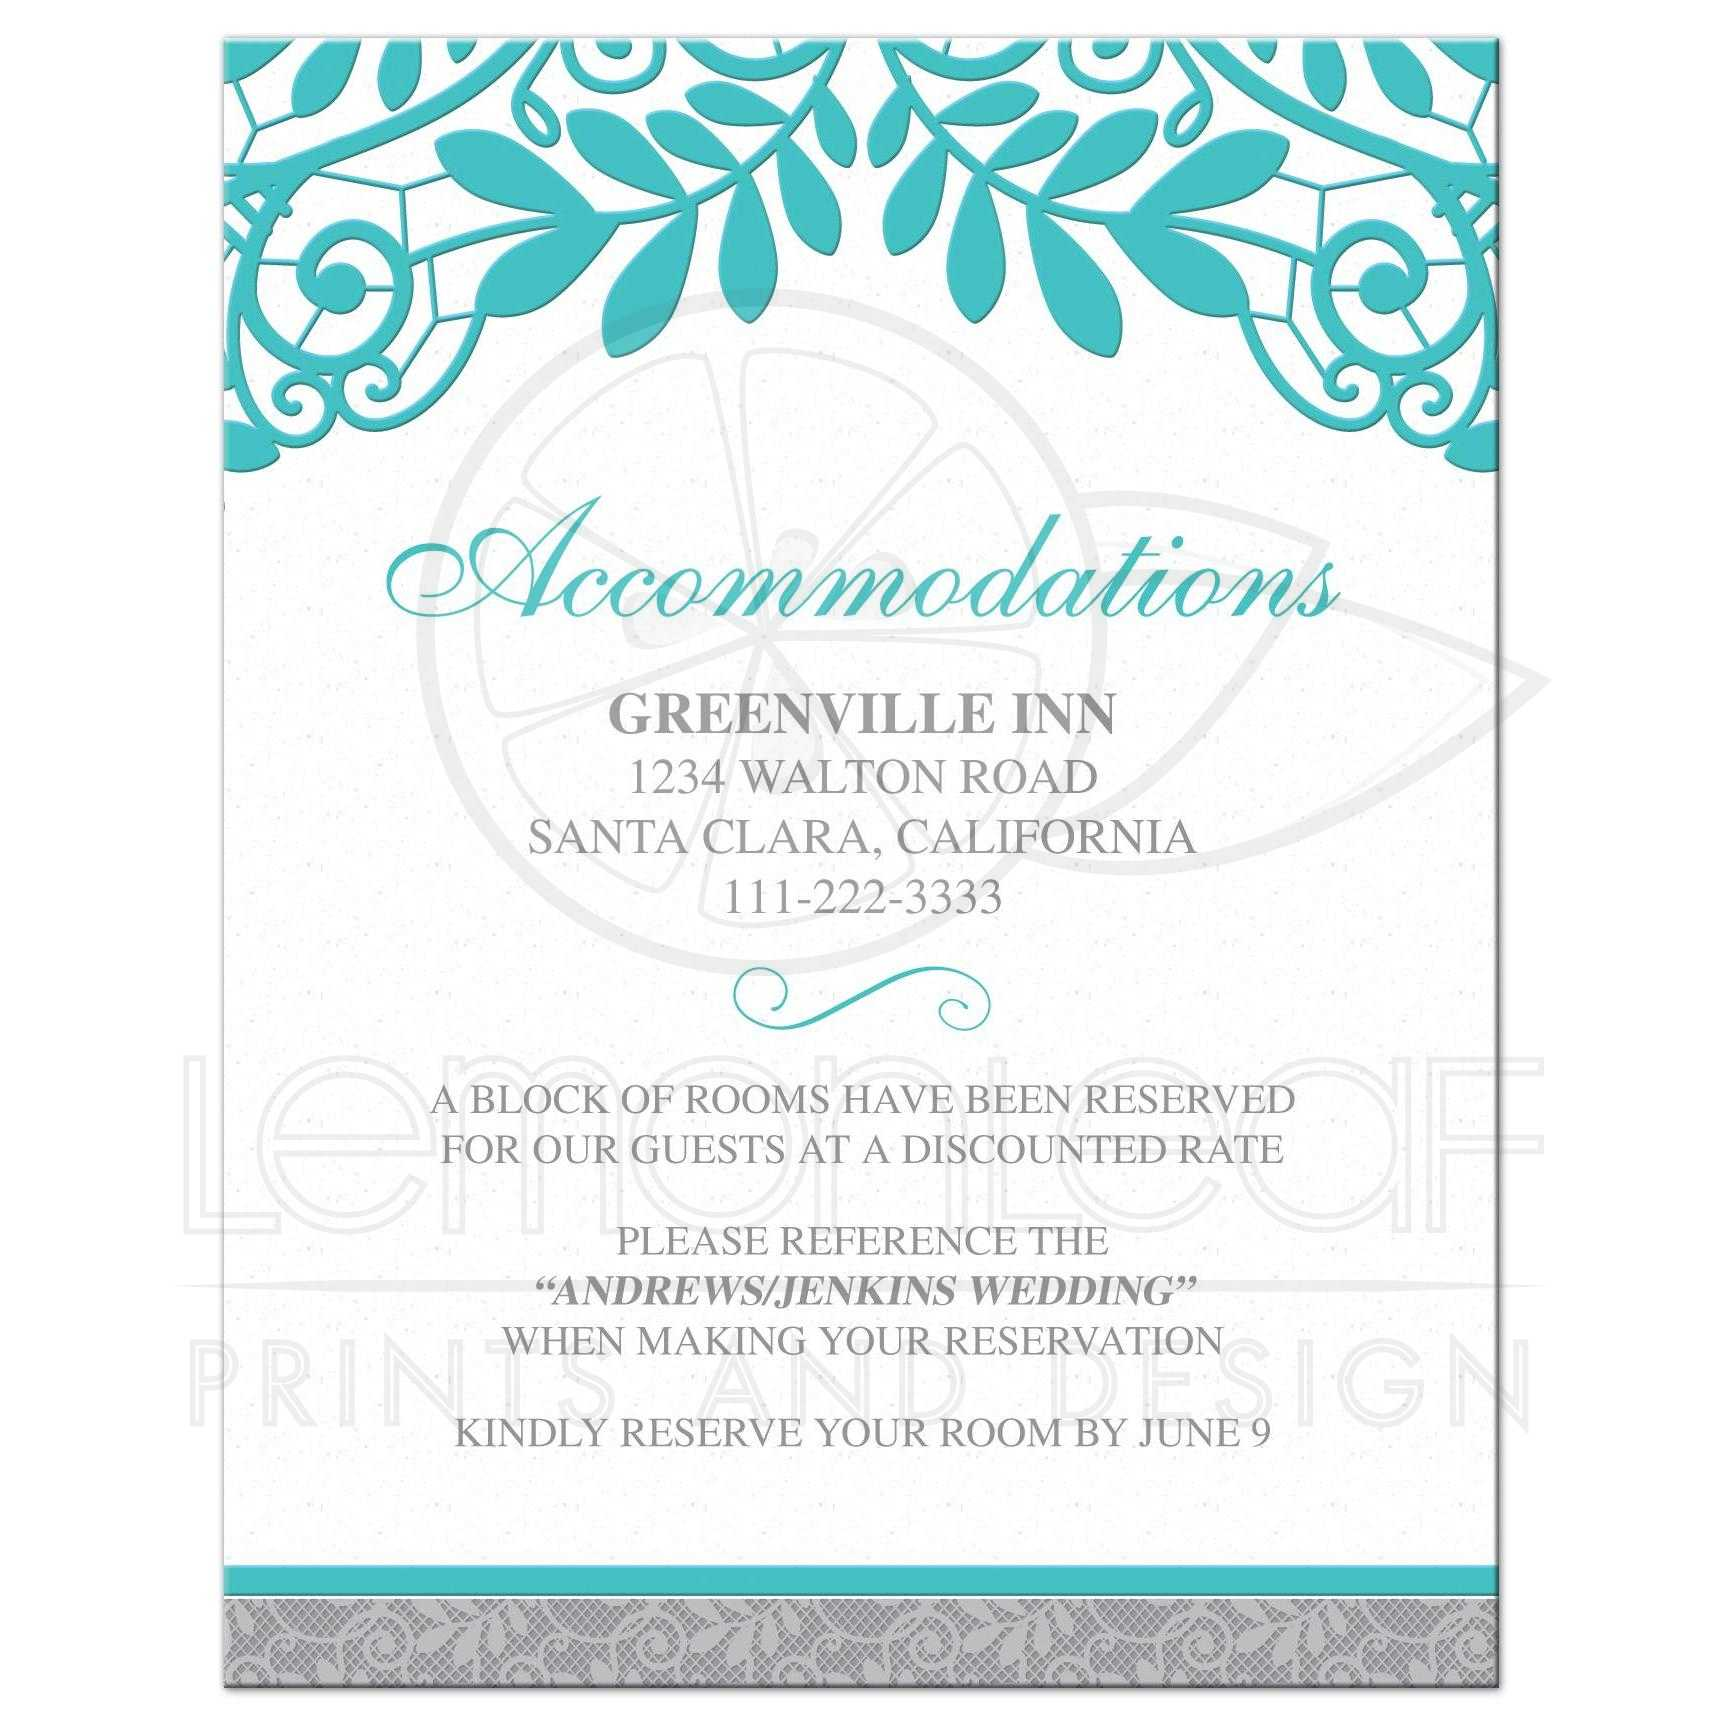 Elegant Turquoise And Silver Grey Lace Wedding Details Insert Card Front